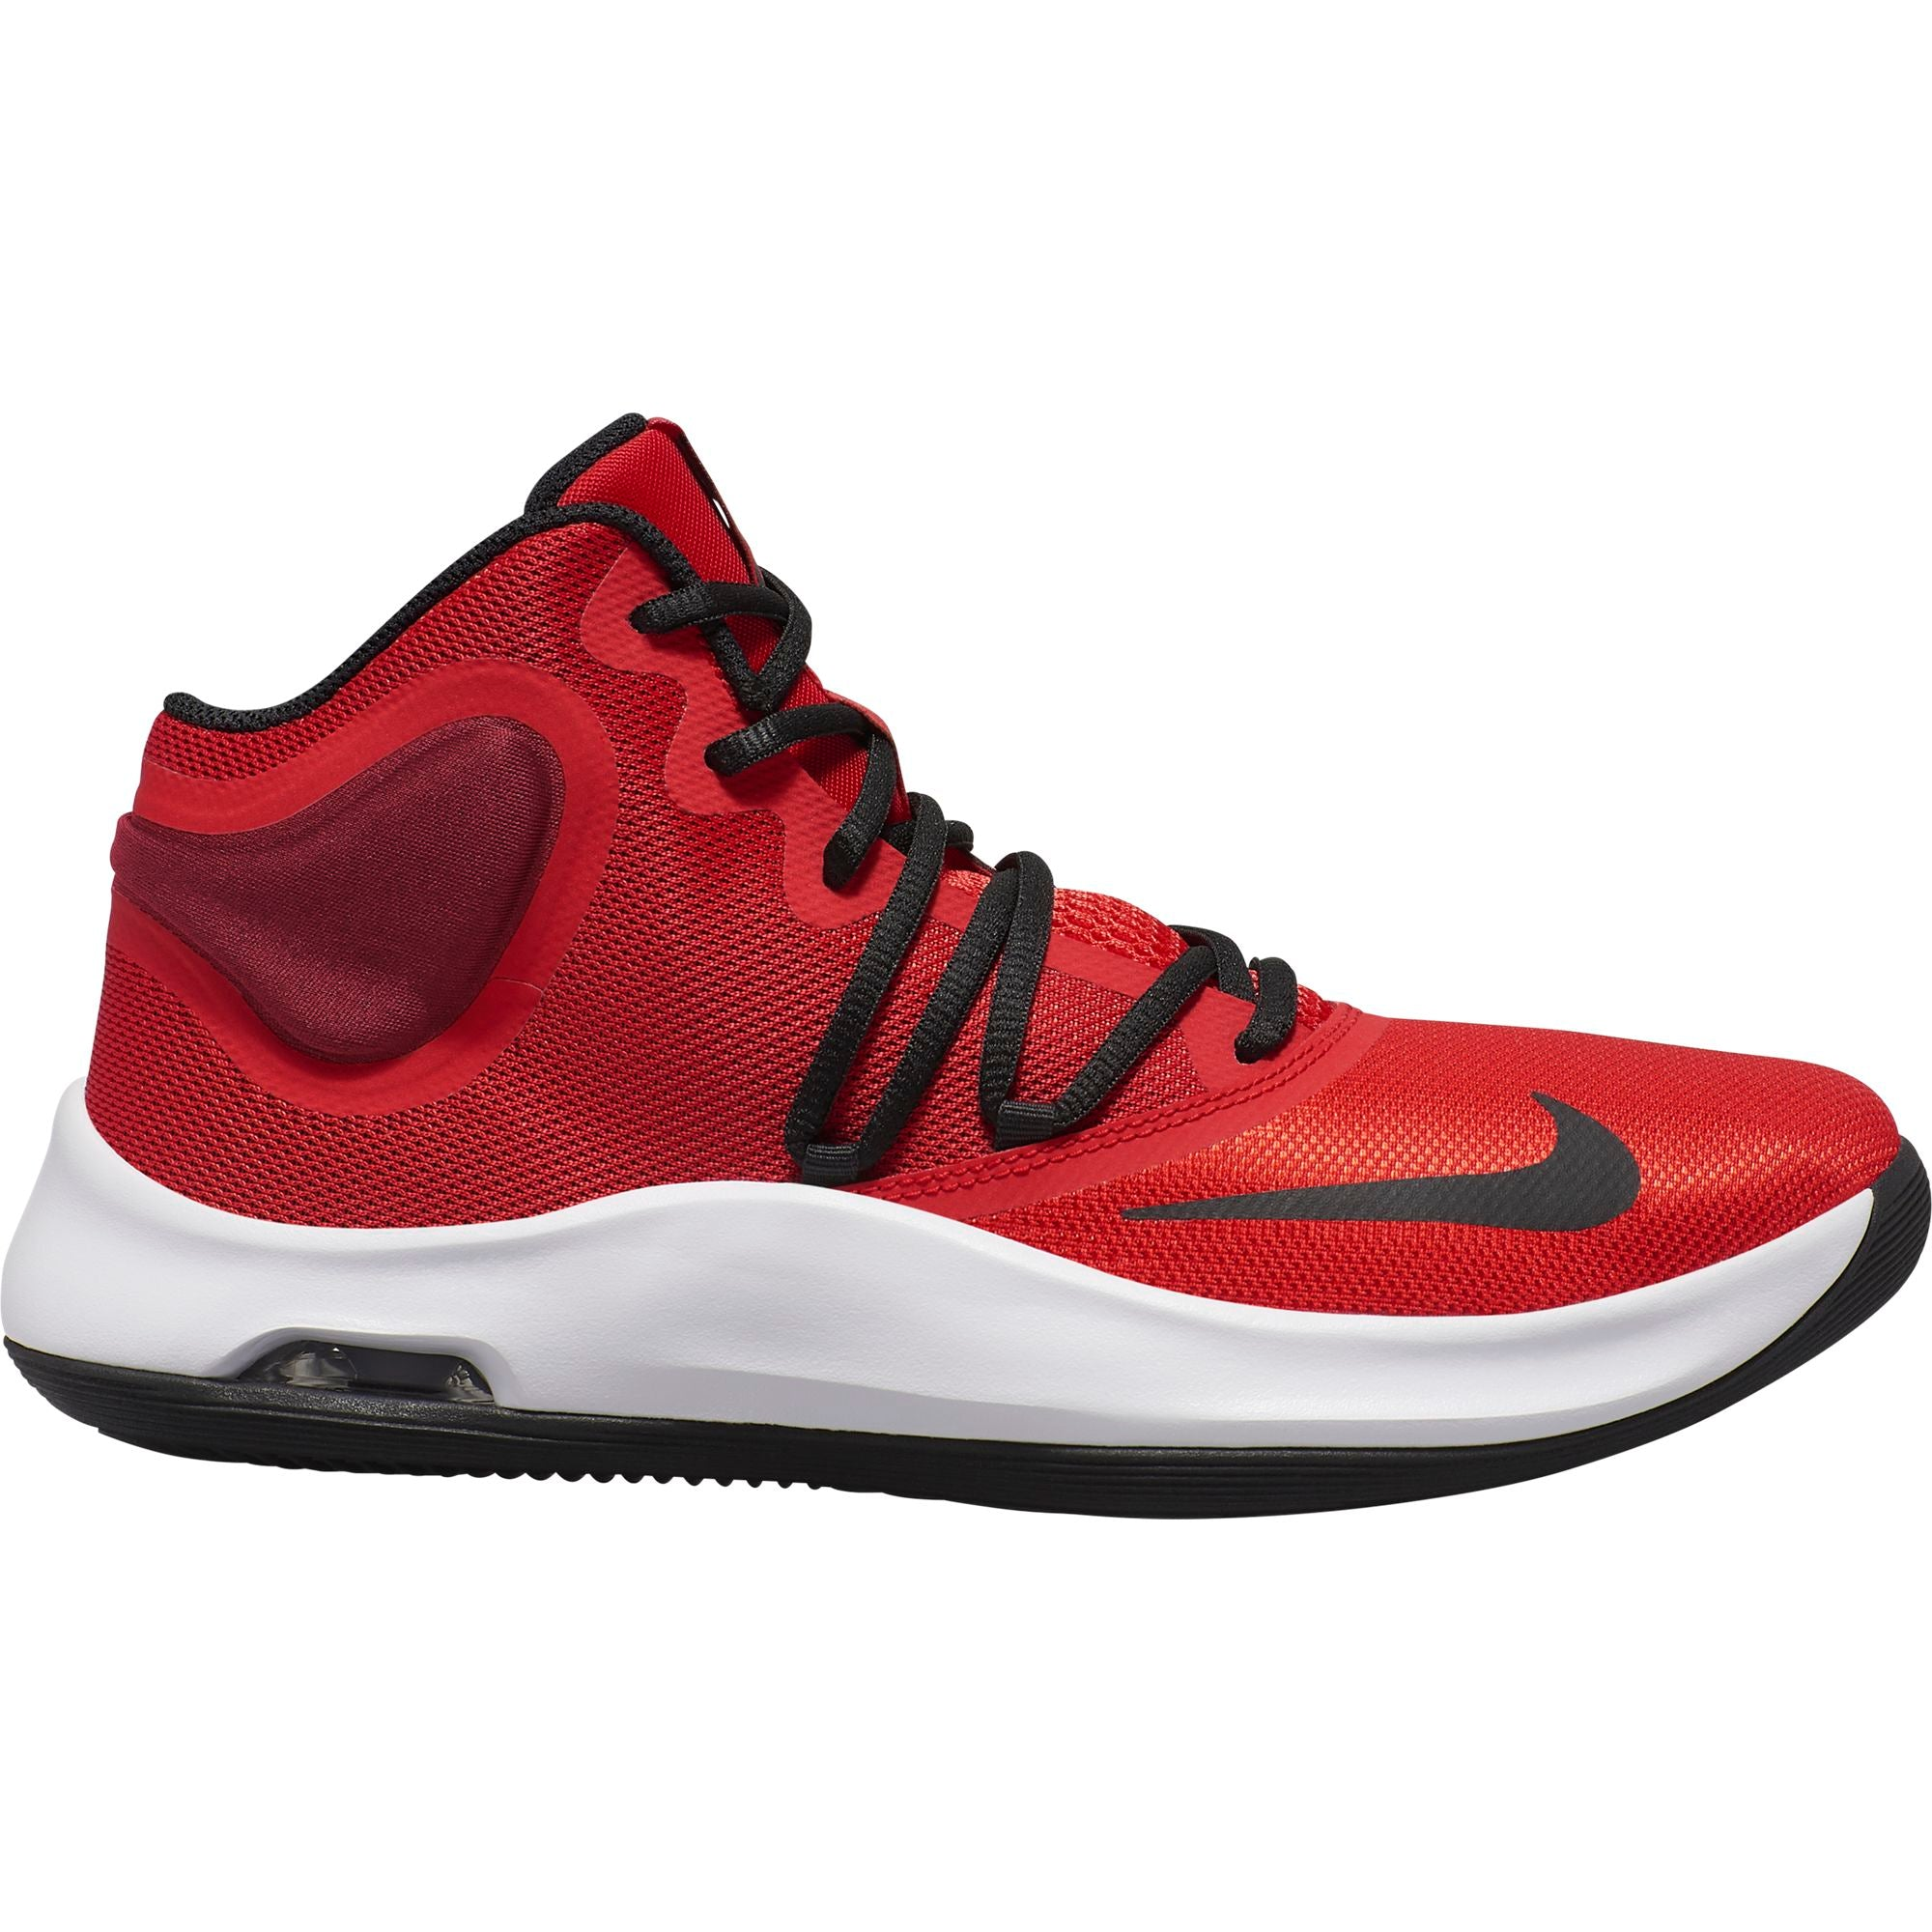 Nike Basketball Air Versitile IV Boot/Shoe - NK-AT1199-600